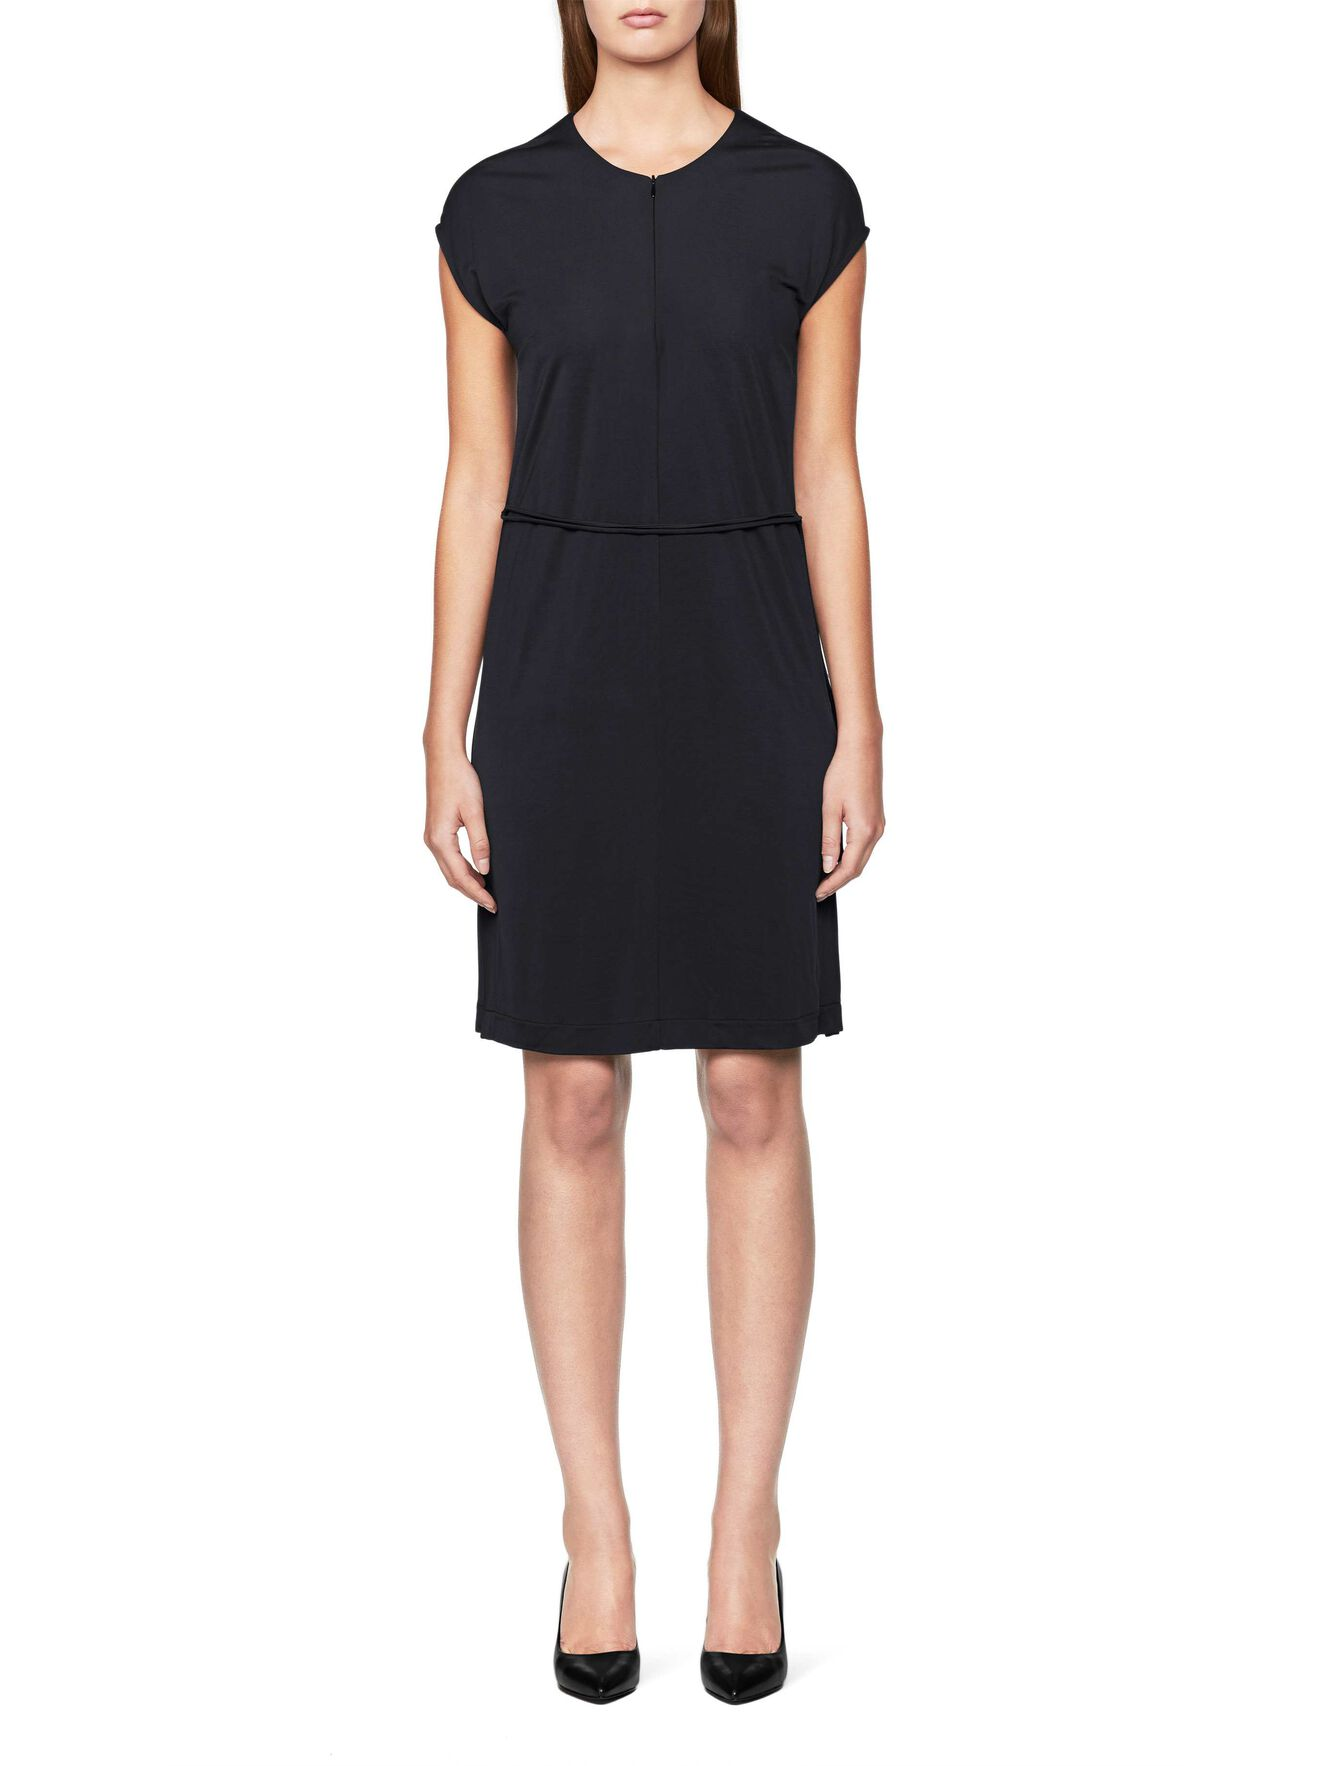 Erinia Dress in Midnight Black from Tiger of Sweden